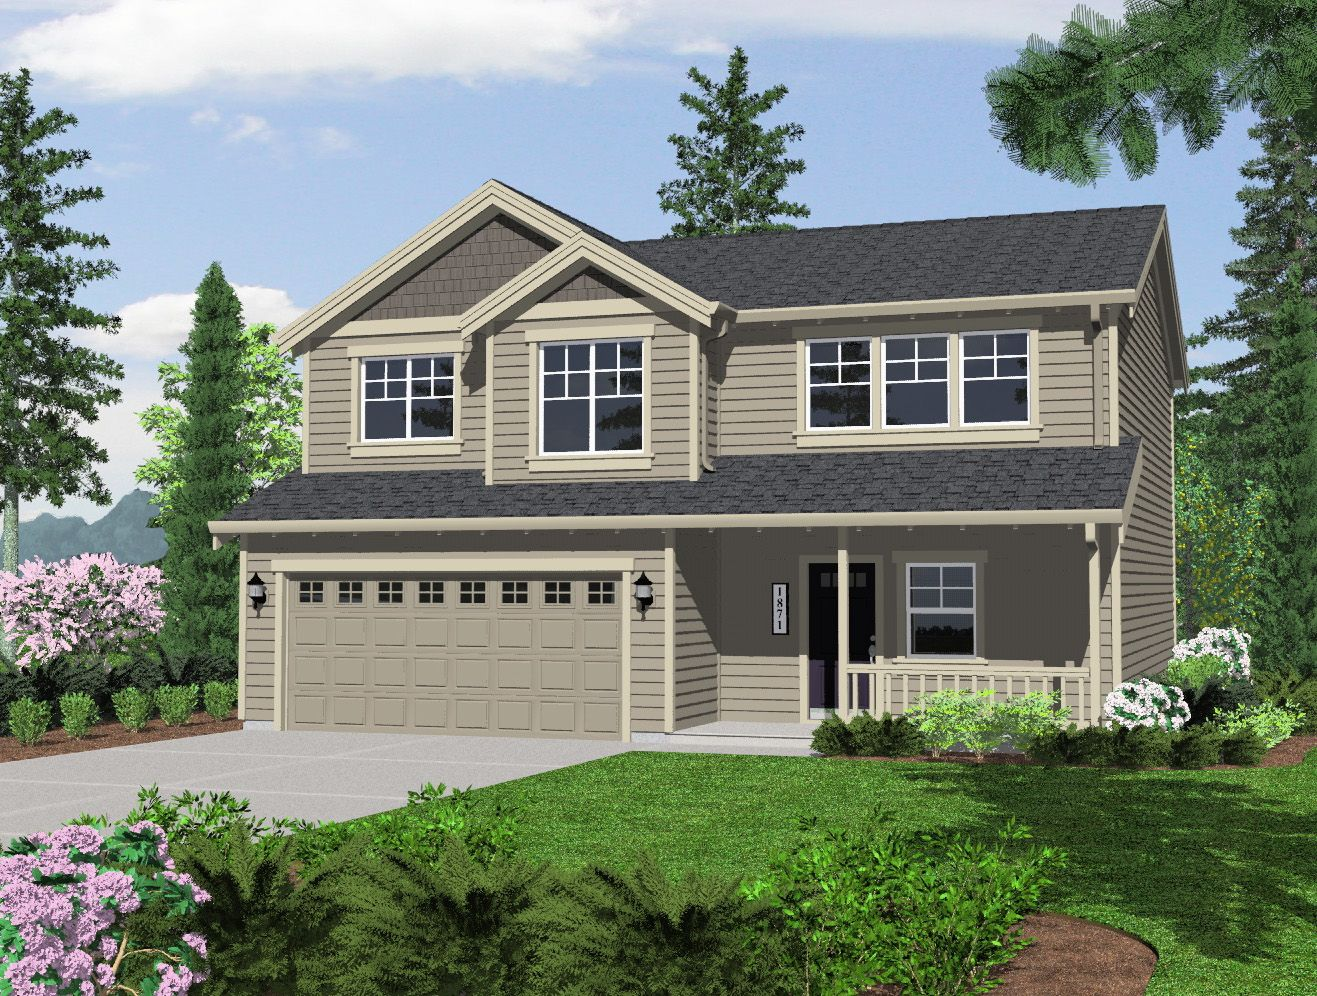 Olin homes llc parkview trails 2909 1053979 battle ground wa new home for sale homegain - Two story holiday homes ...